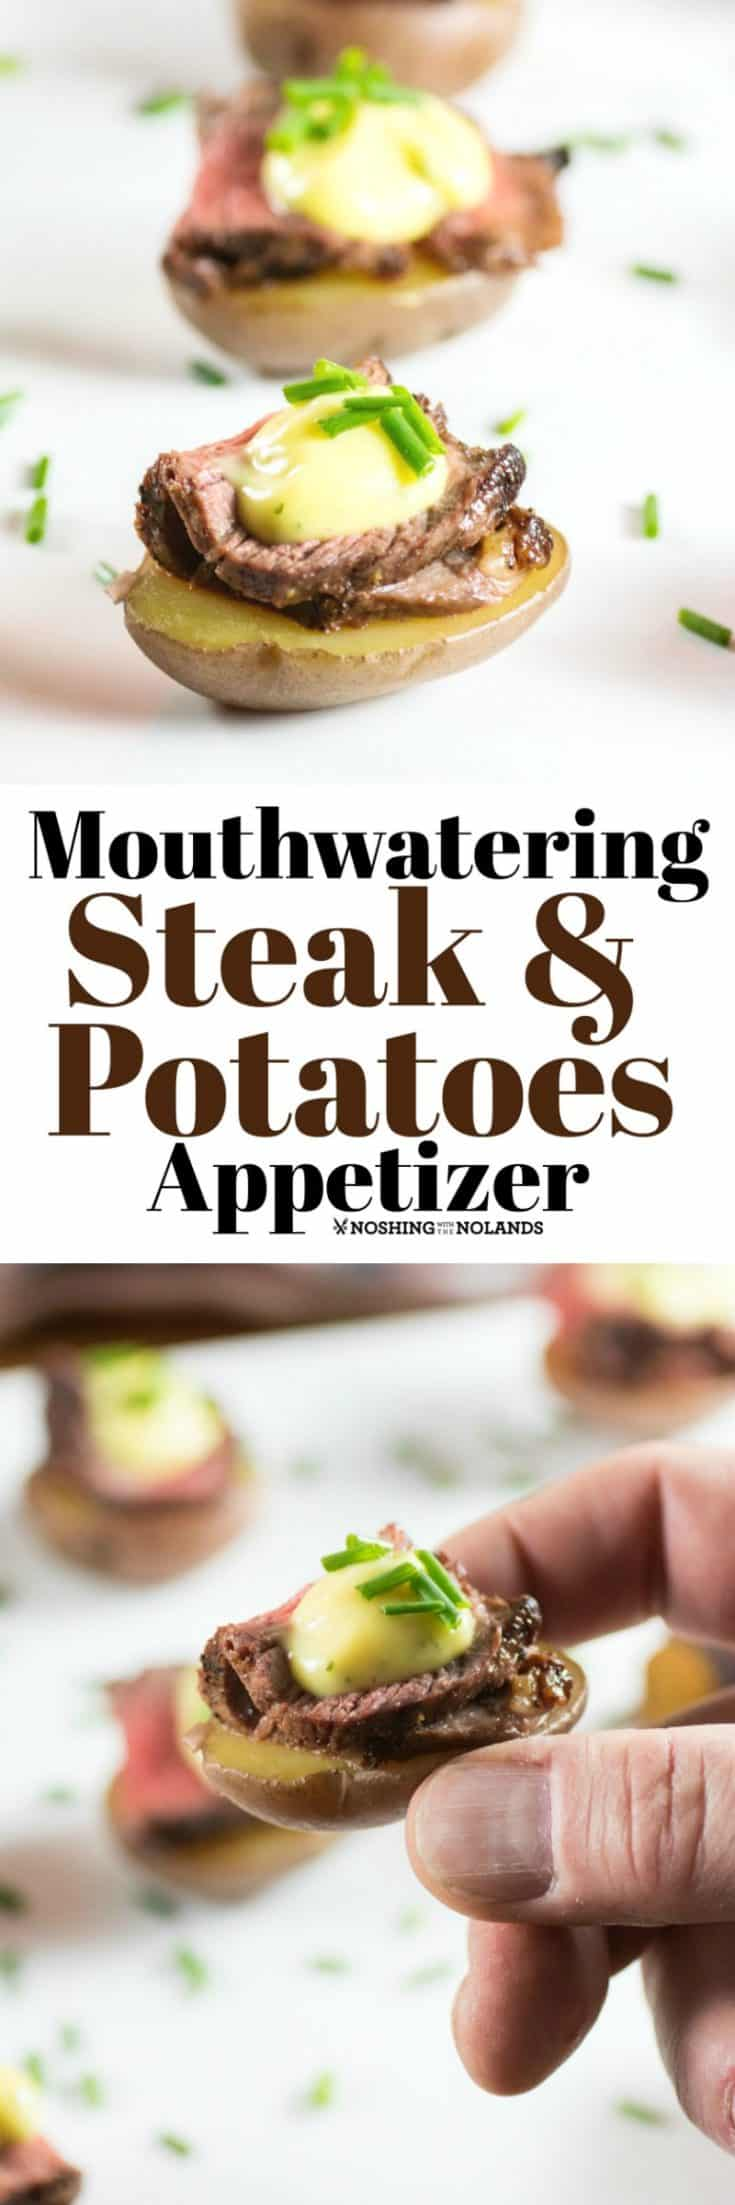 Mouthwatering Steak and Potatoes Appetizer is easy to make, elegant and gives everyone that steak and potato love!! #appetizer #steakandpotatoes